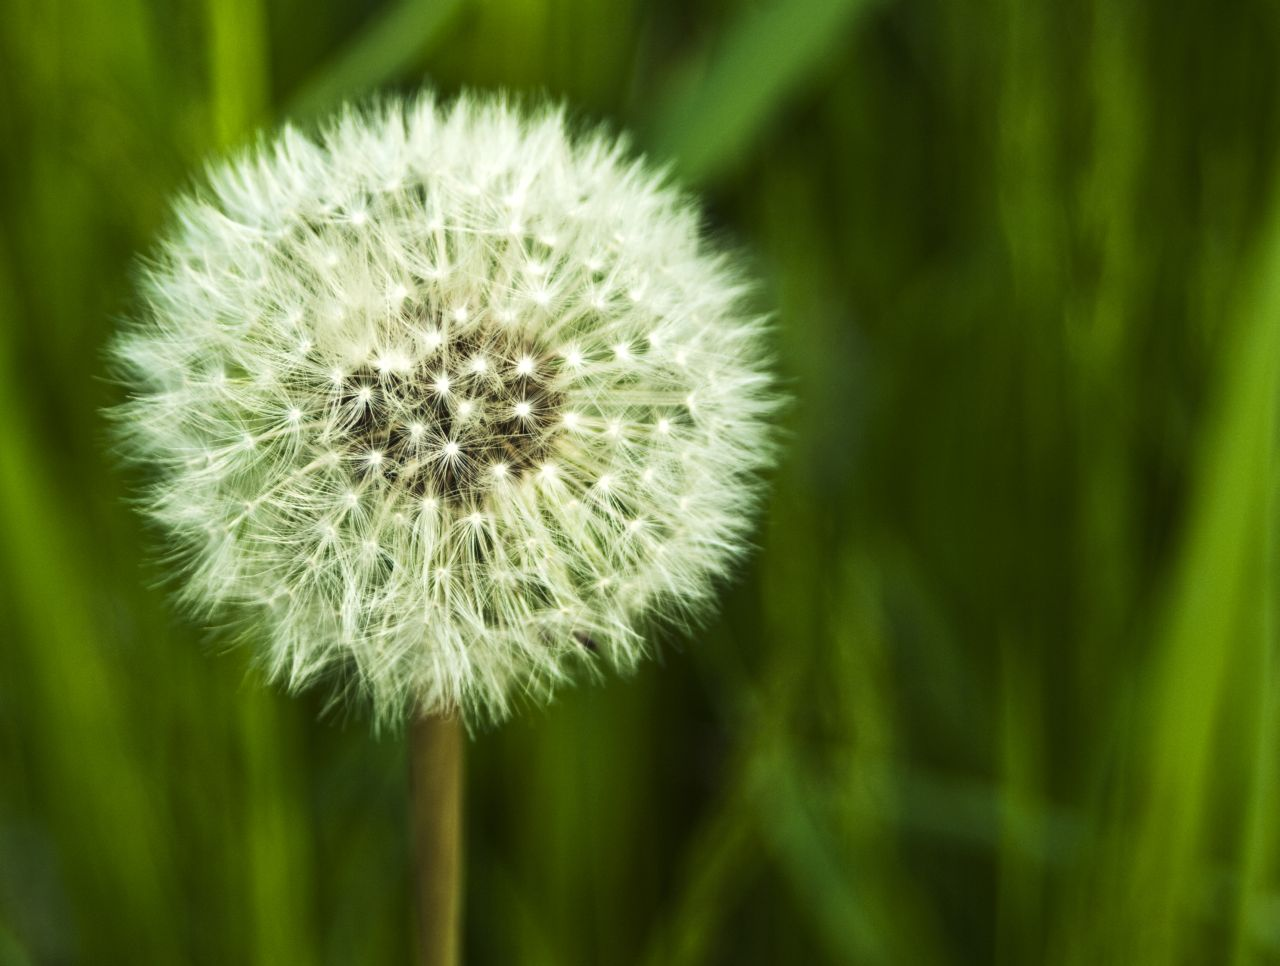 an information on dandelion Get information, facts, and pictures about dandelion at encyclopediacom make research projects and school reports about dandelion easy with credible articles from our free, online encyclopedia and dictionary.